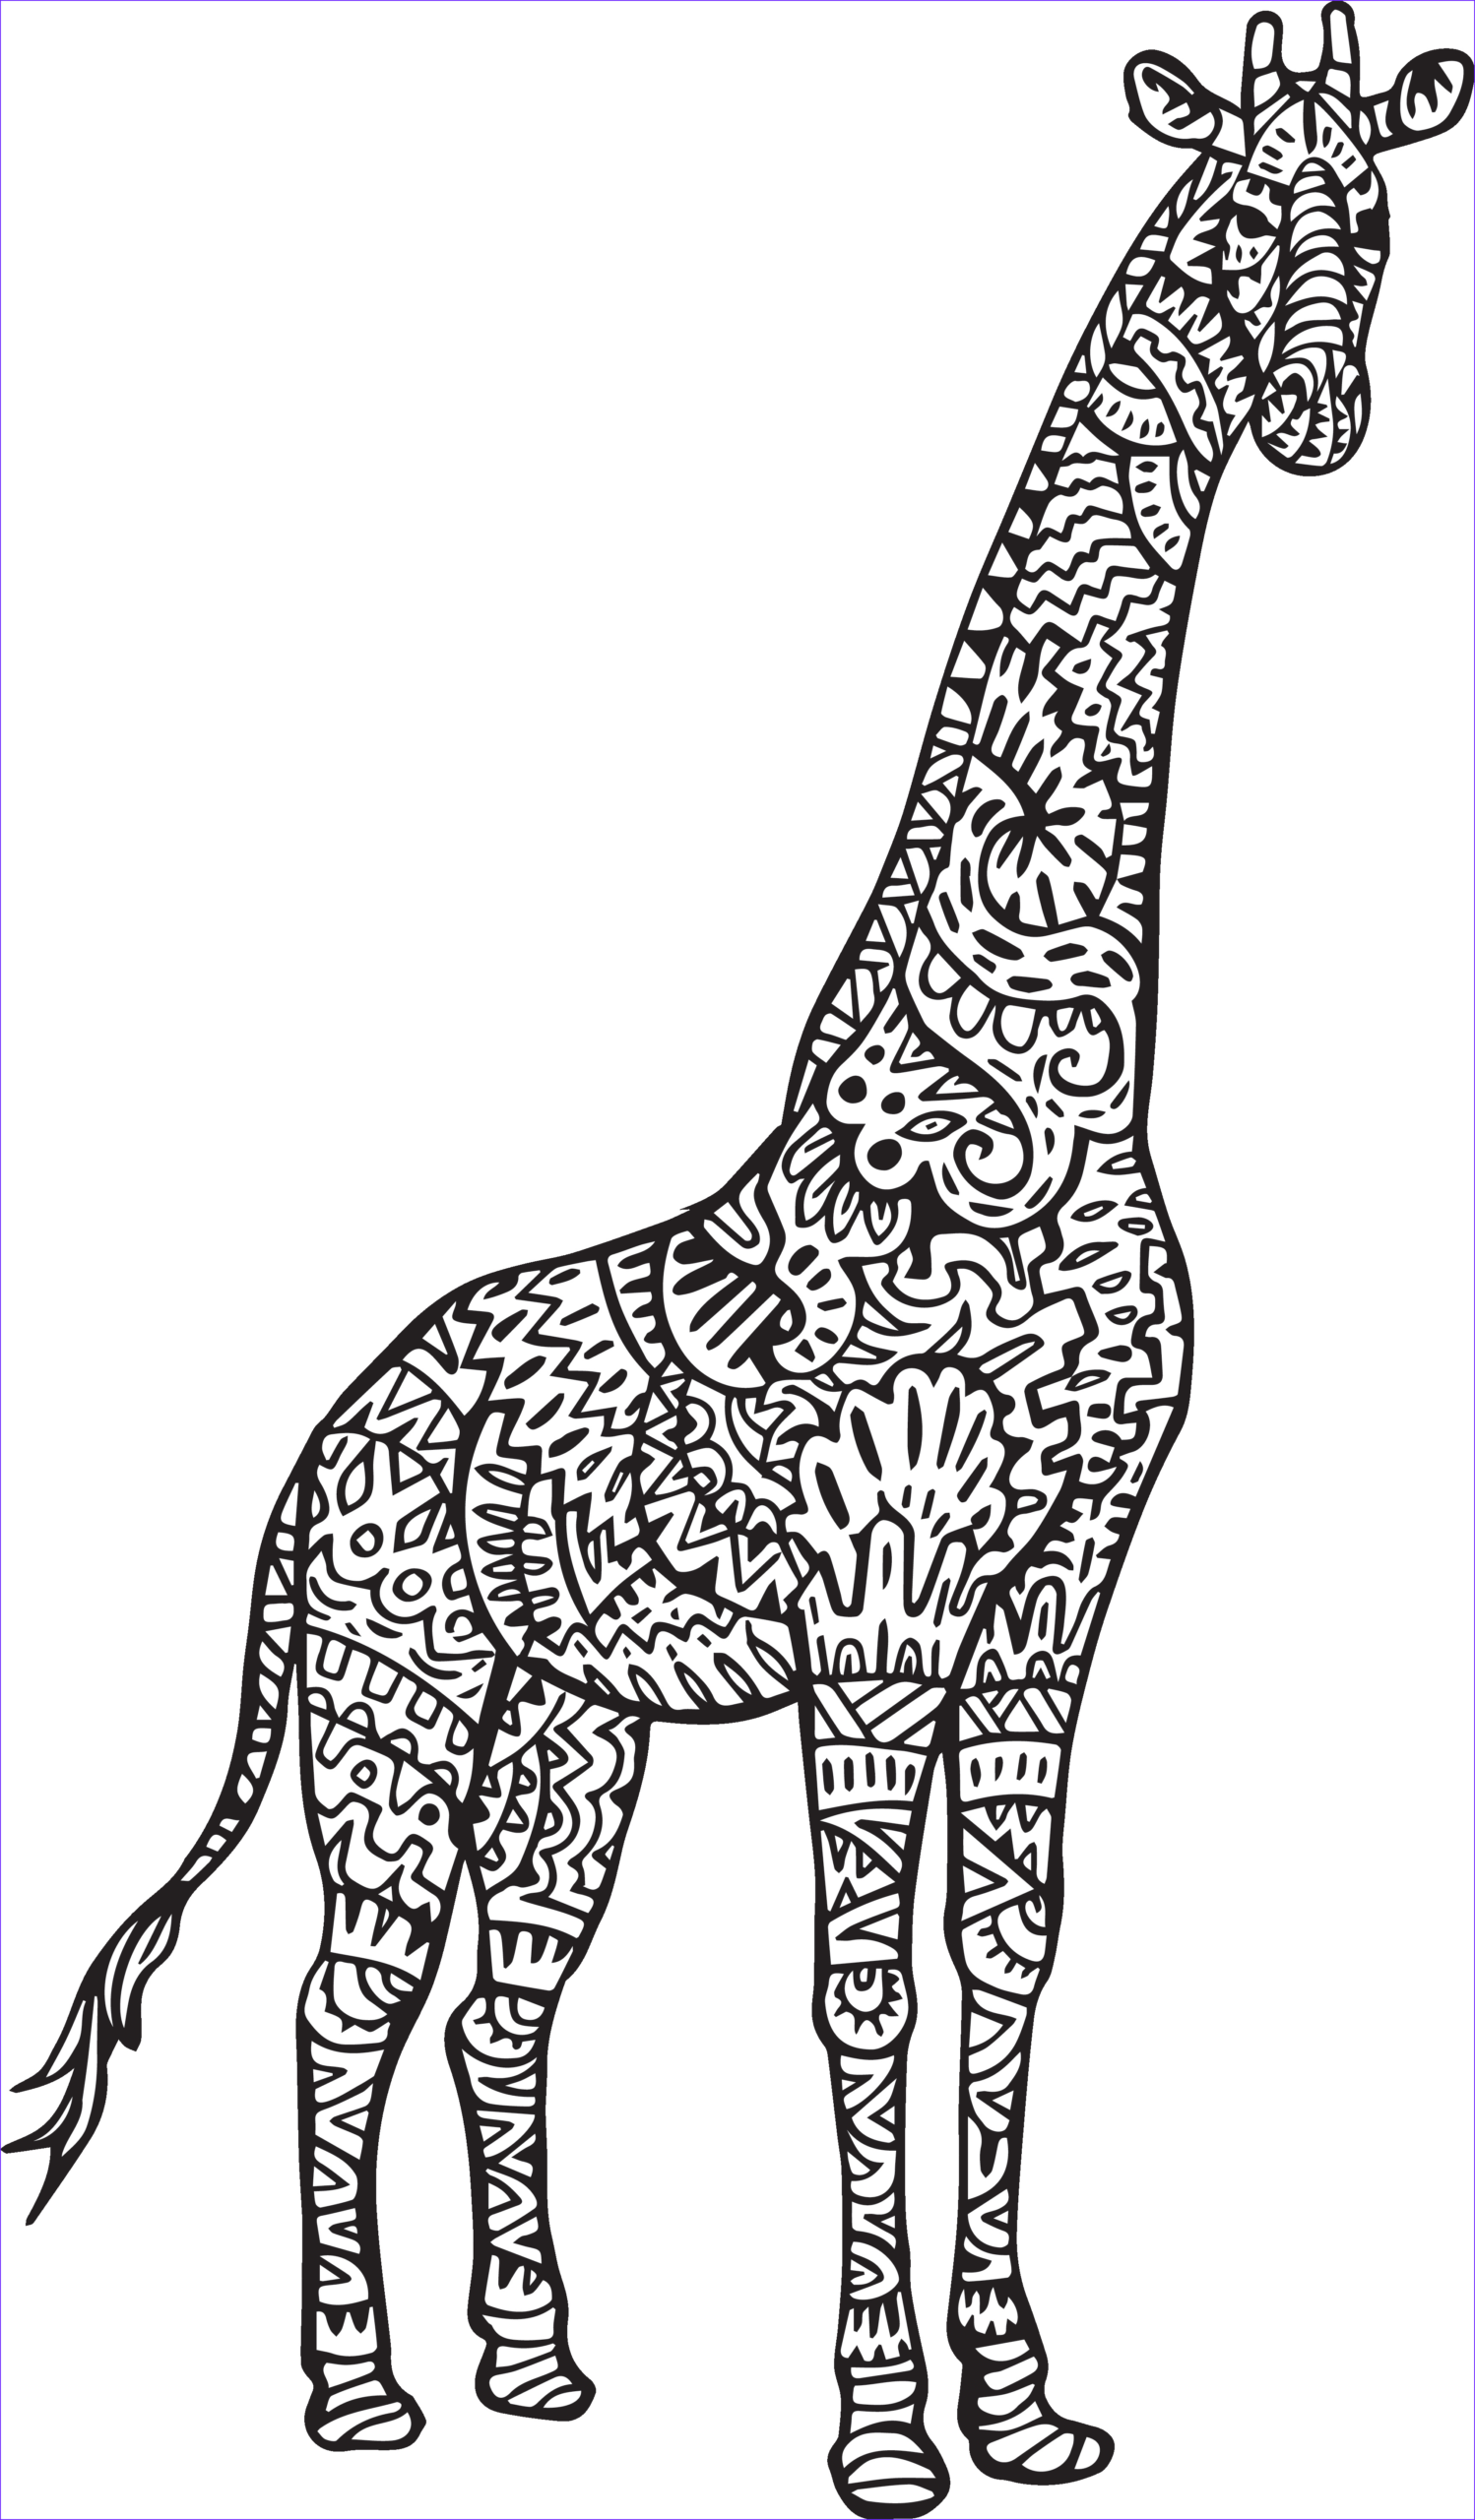 Giraffe Coloring Pictures Best Of Photography April S Baby Has Arrived and Here is the Video Hip